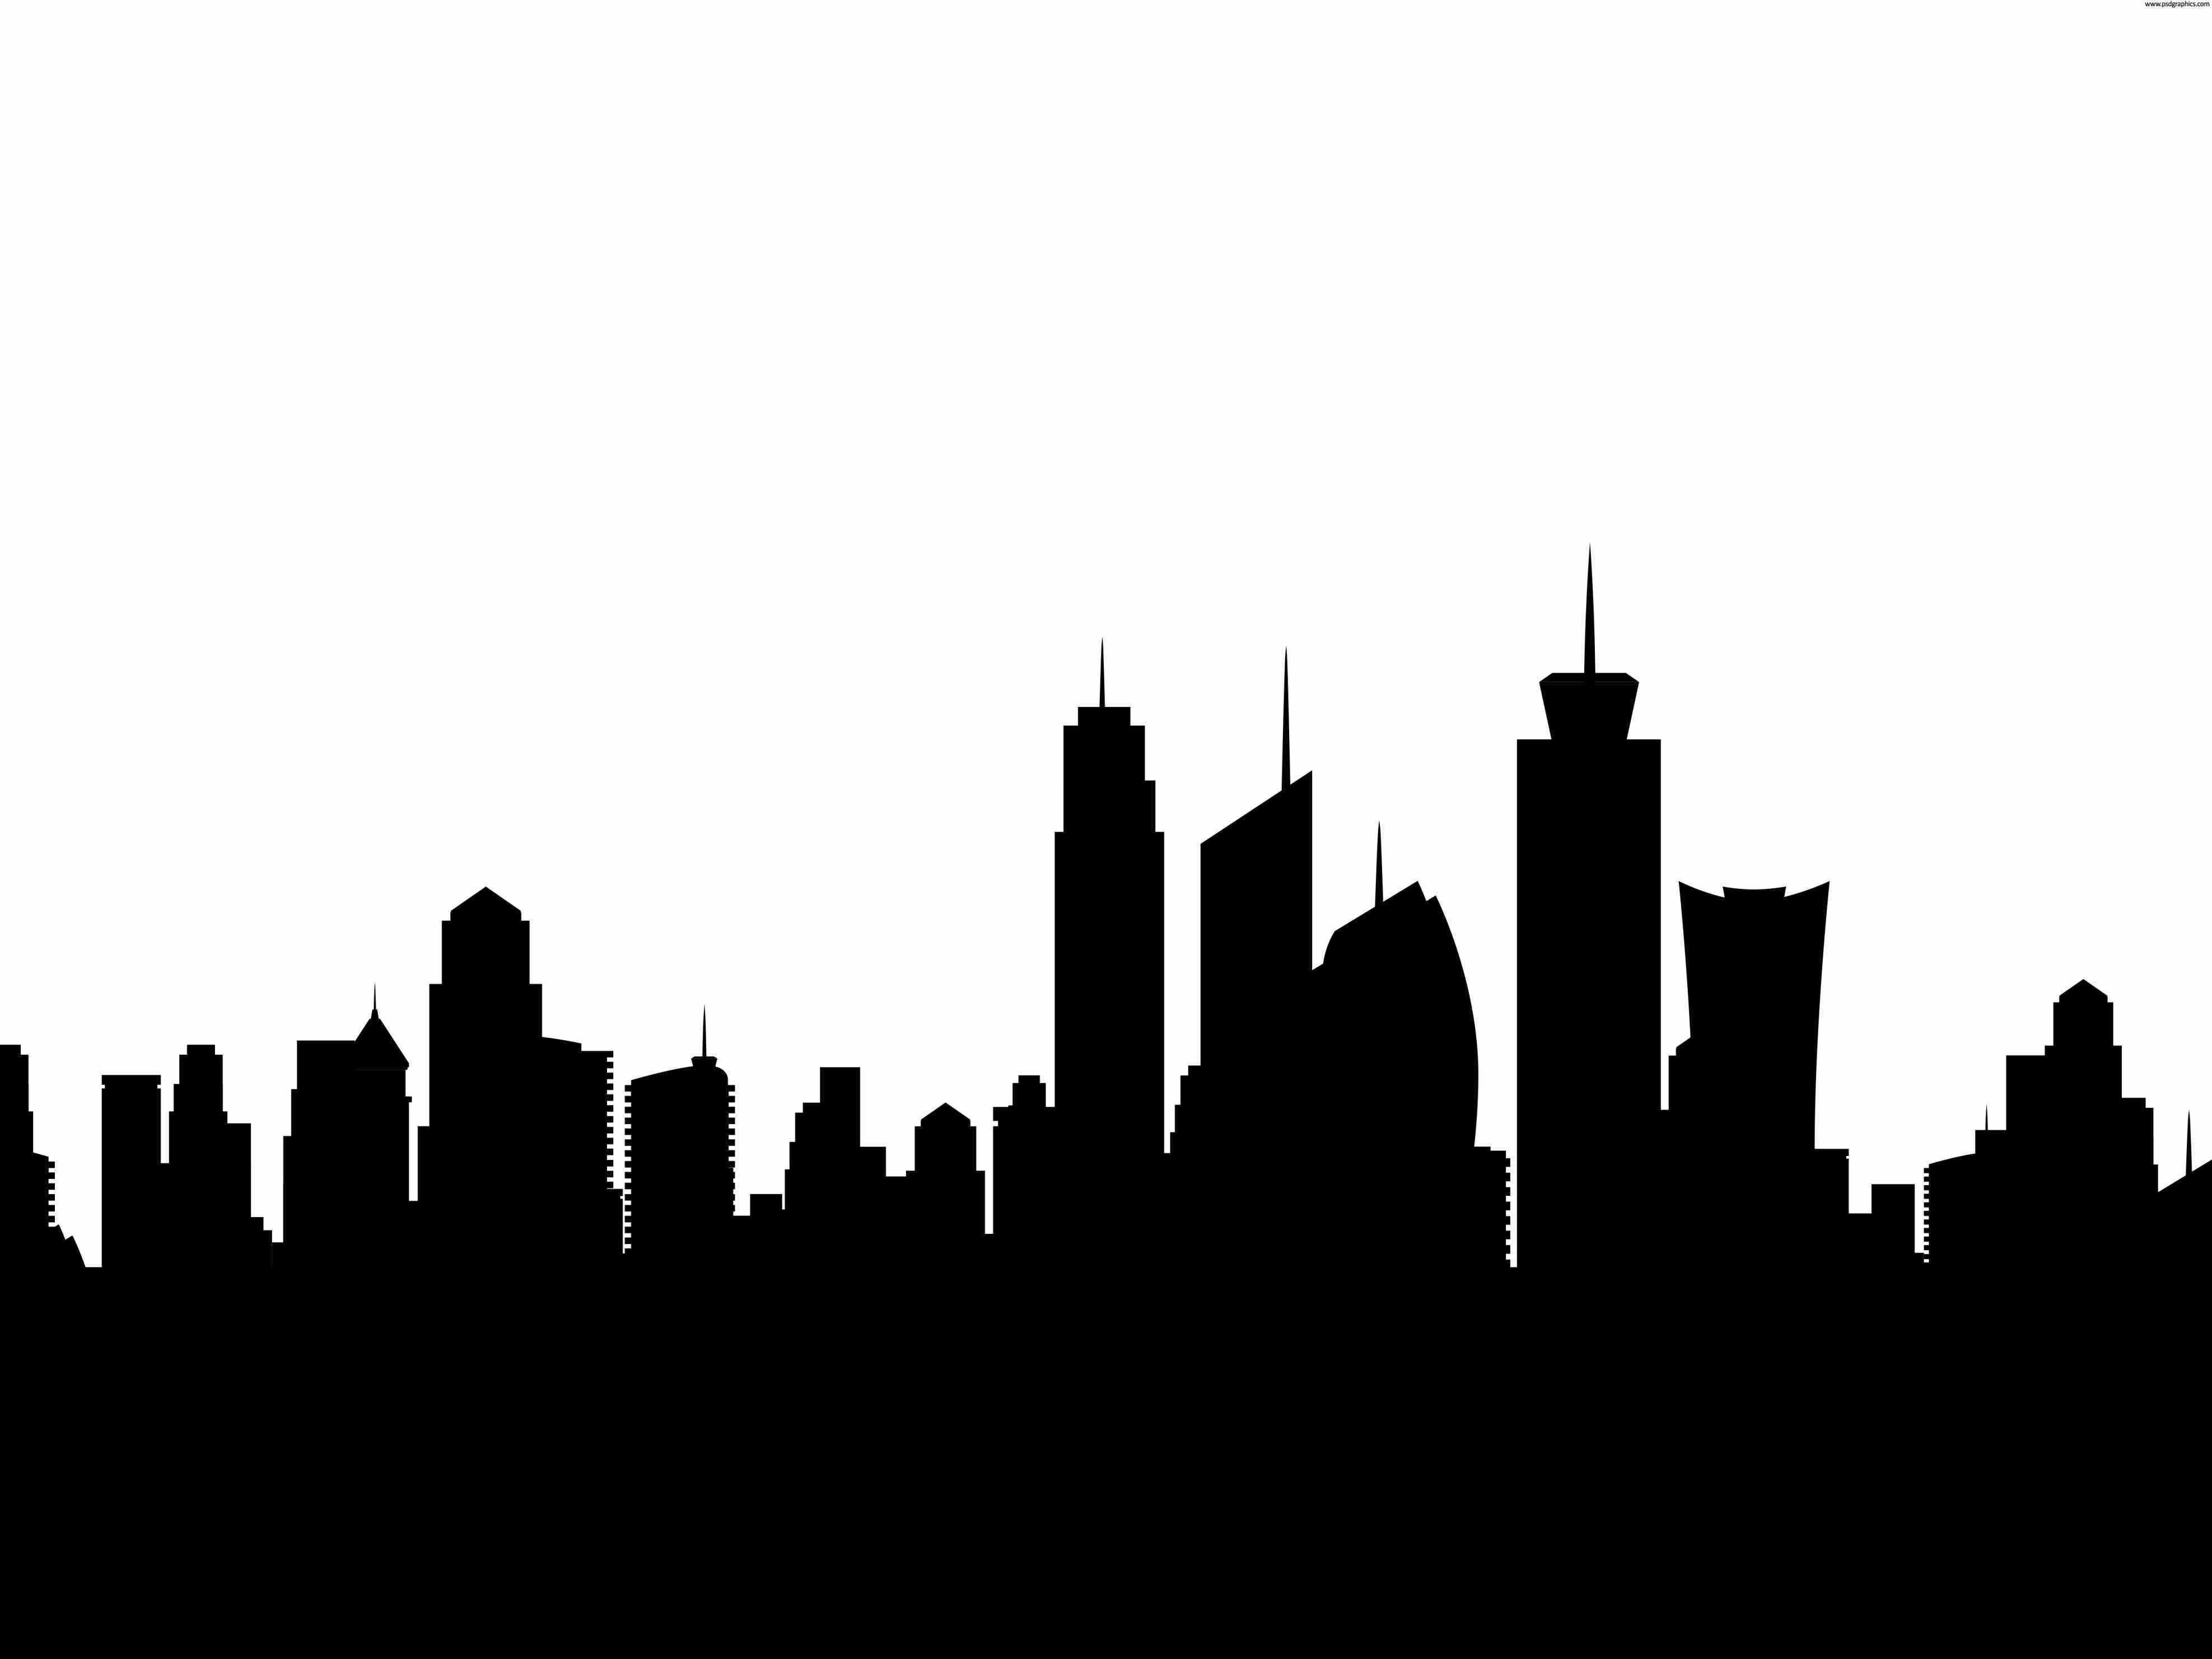 nyc silhouette at getdrawings com free for personal use nyc rh getdrawings com NYC Skyline Black and White NYC Skyline Black and White